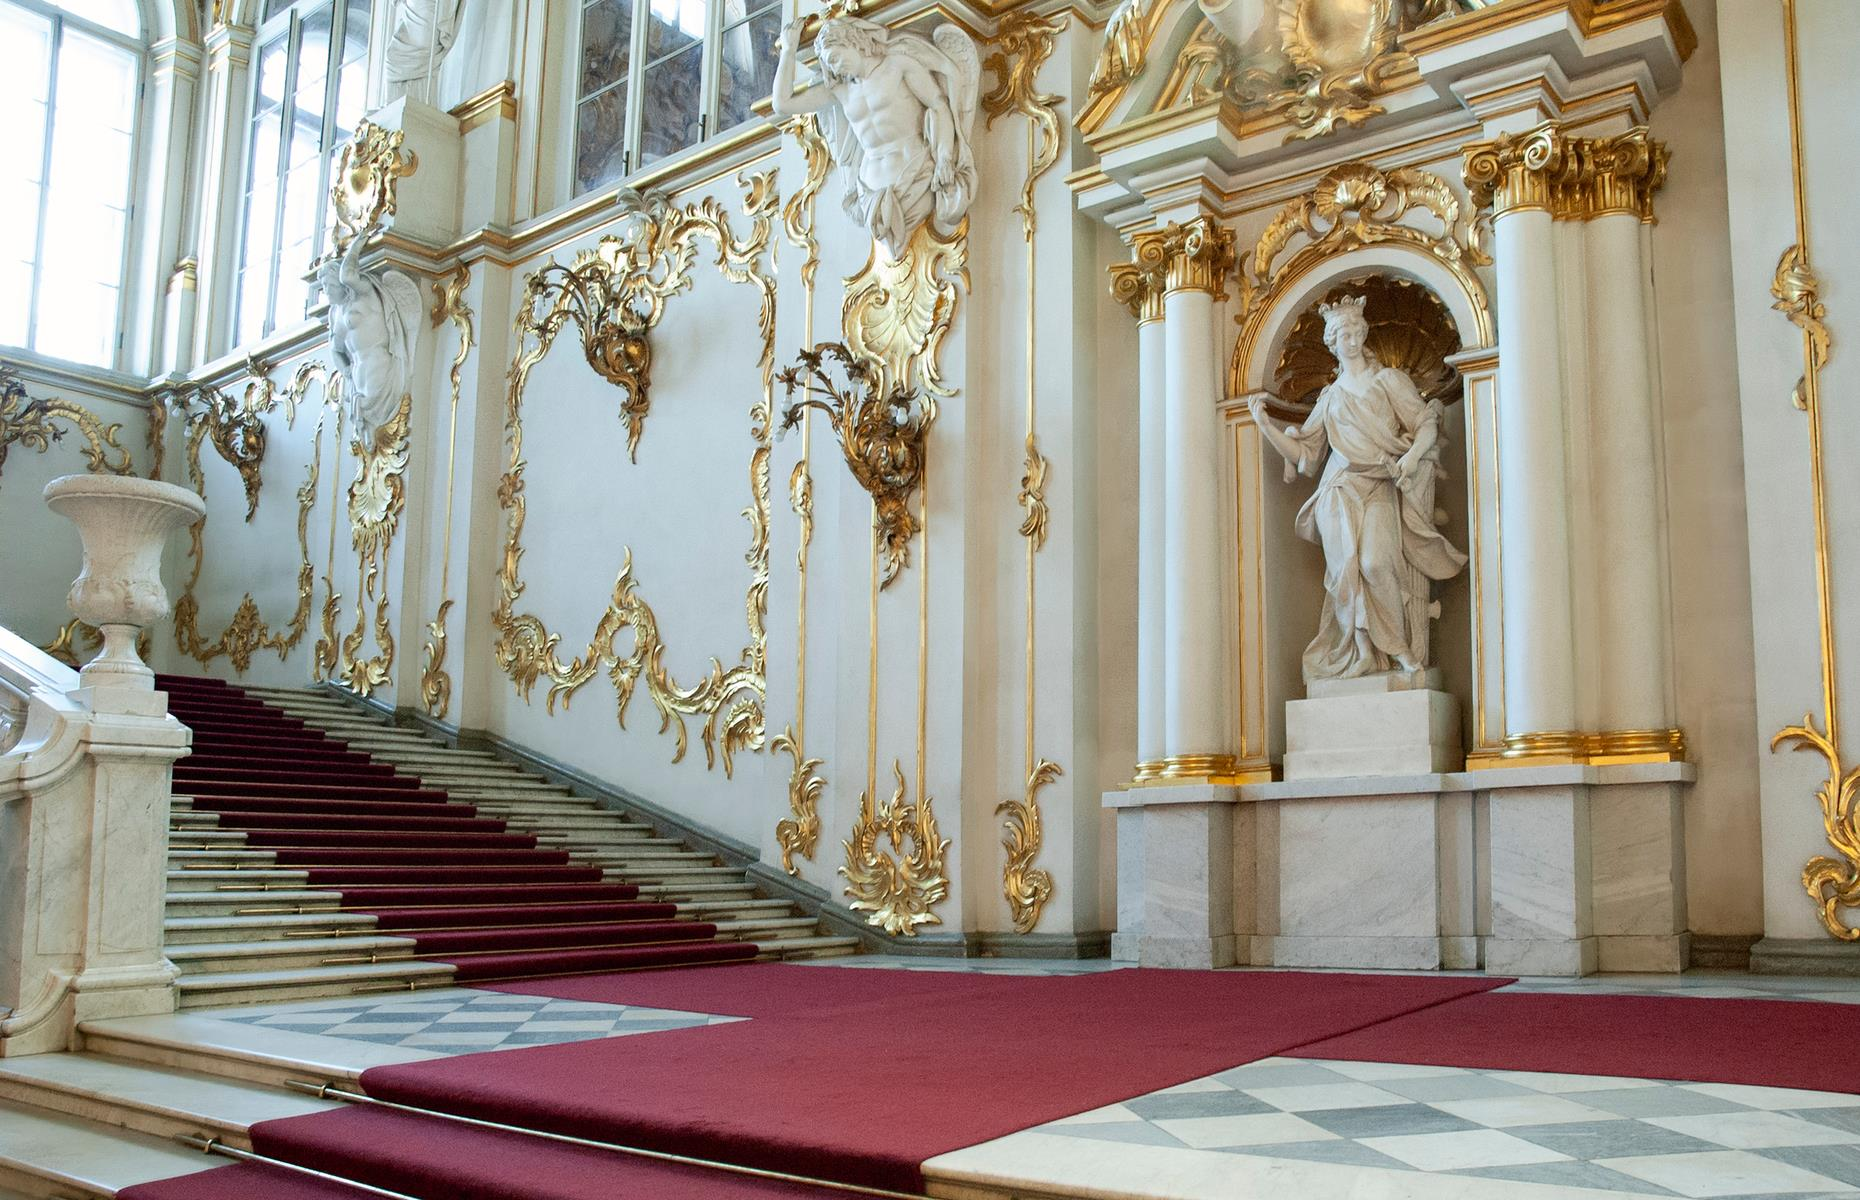 Slide 9 of 53: The palace has 1,945 windows and 1,786 doors, and overflows with columns, artworks and statues, such as those that adorn the Jordan Staircase. It was the official residence of Russian Emperors until 1917, and no building in the city is allowed to overshadow it.